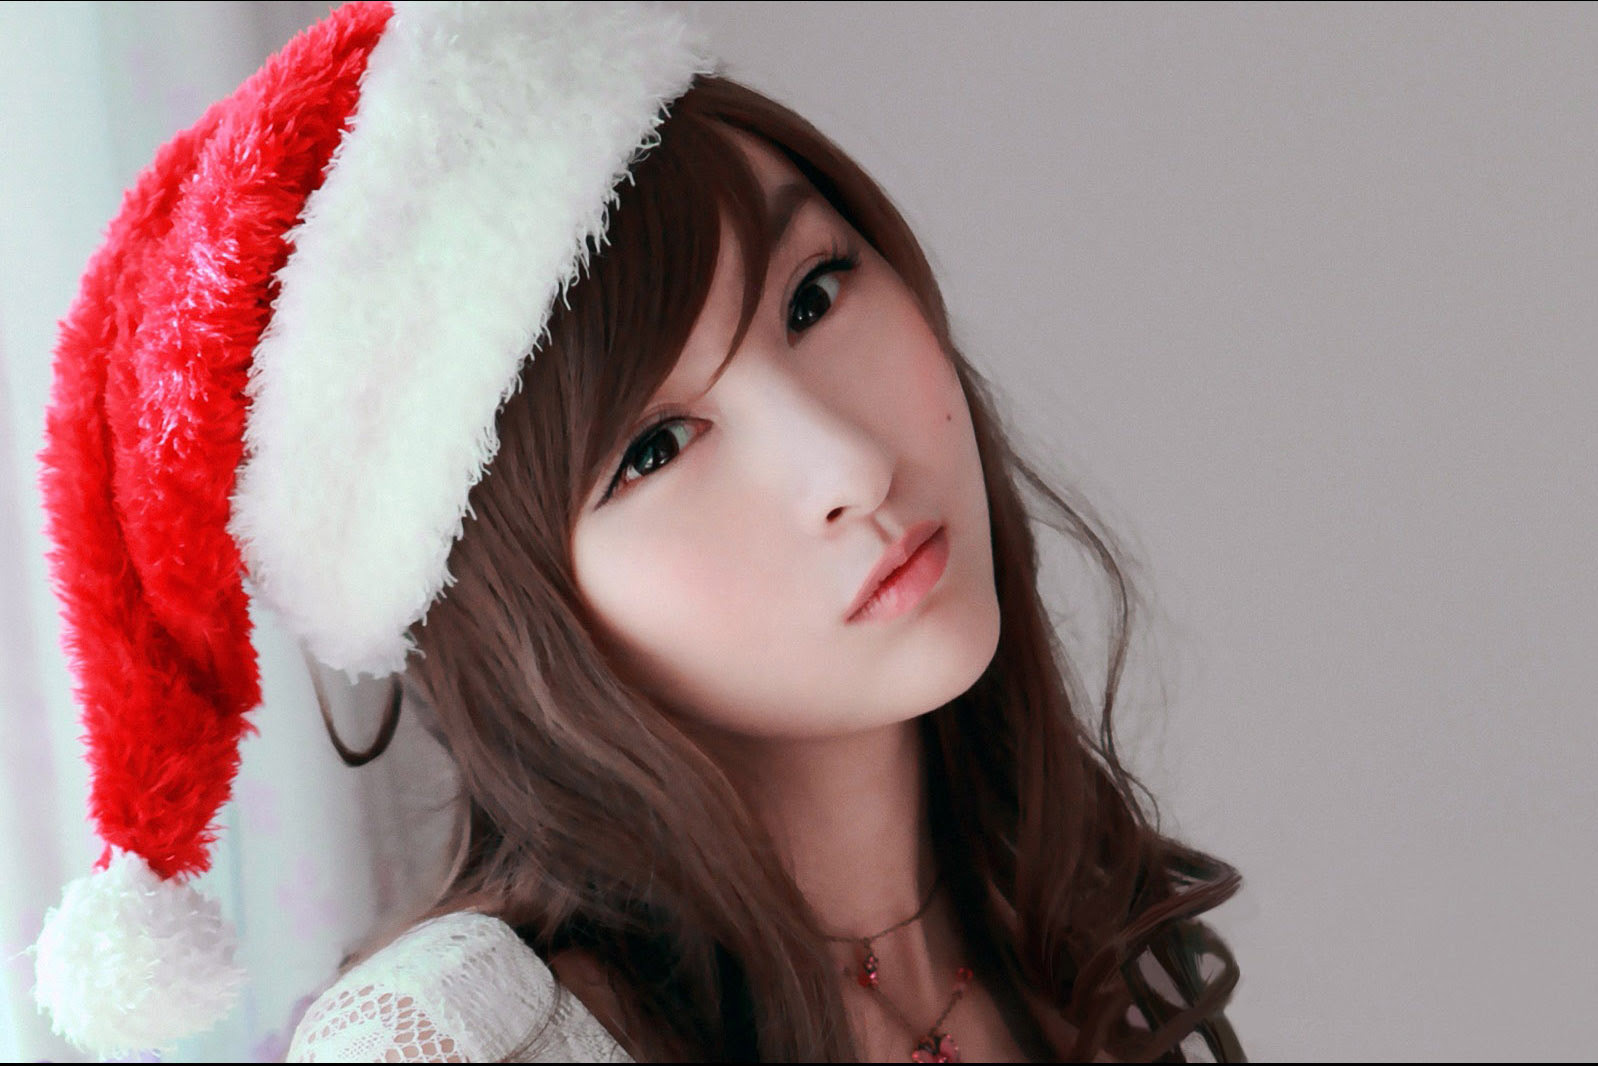 Cute Girl Wallpapers (52 Wallpapers) - Adorable Wallpapers